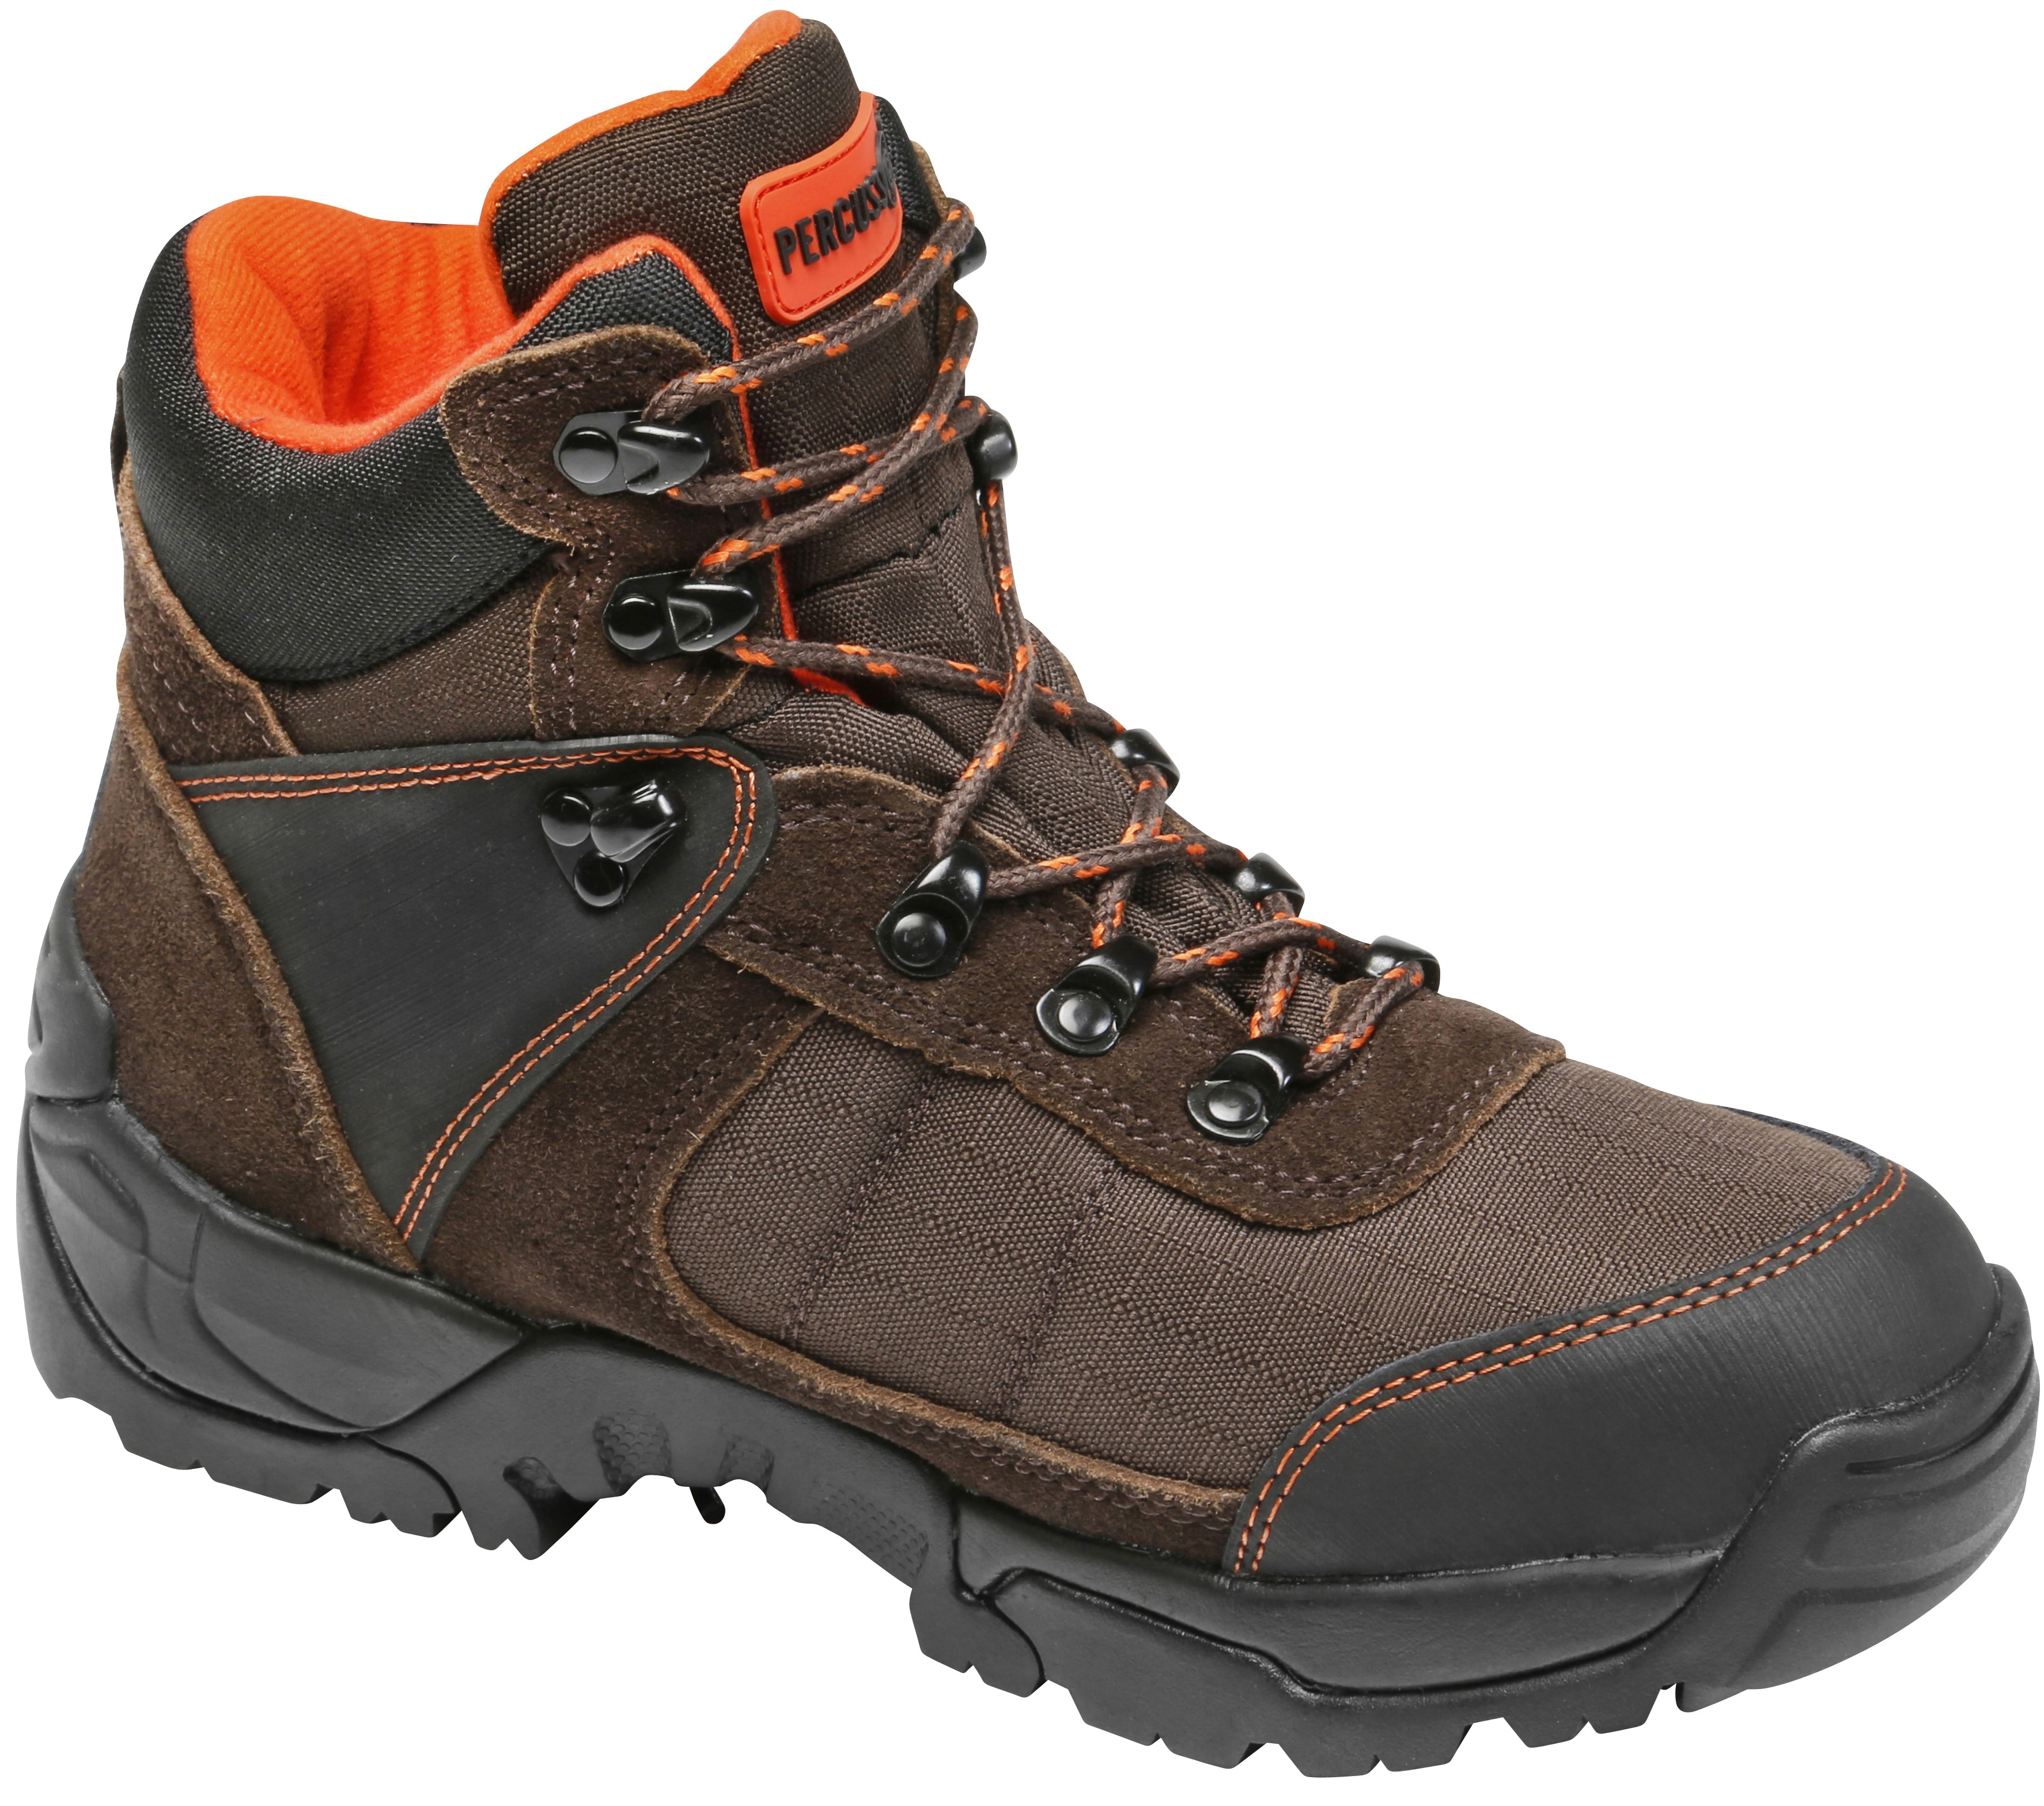 Skintane Chaussures Sologne Achat Vente Chasse xerodBWC